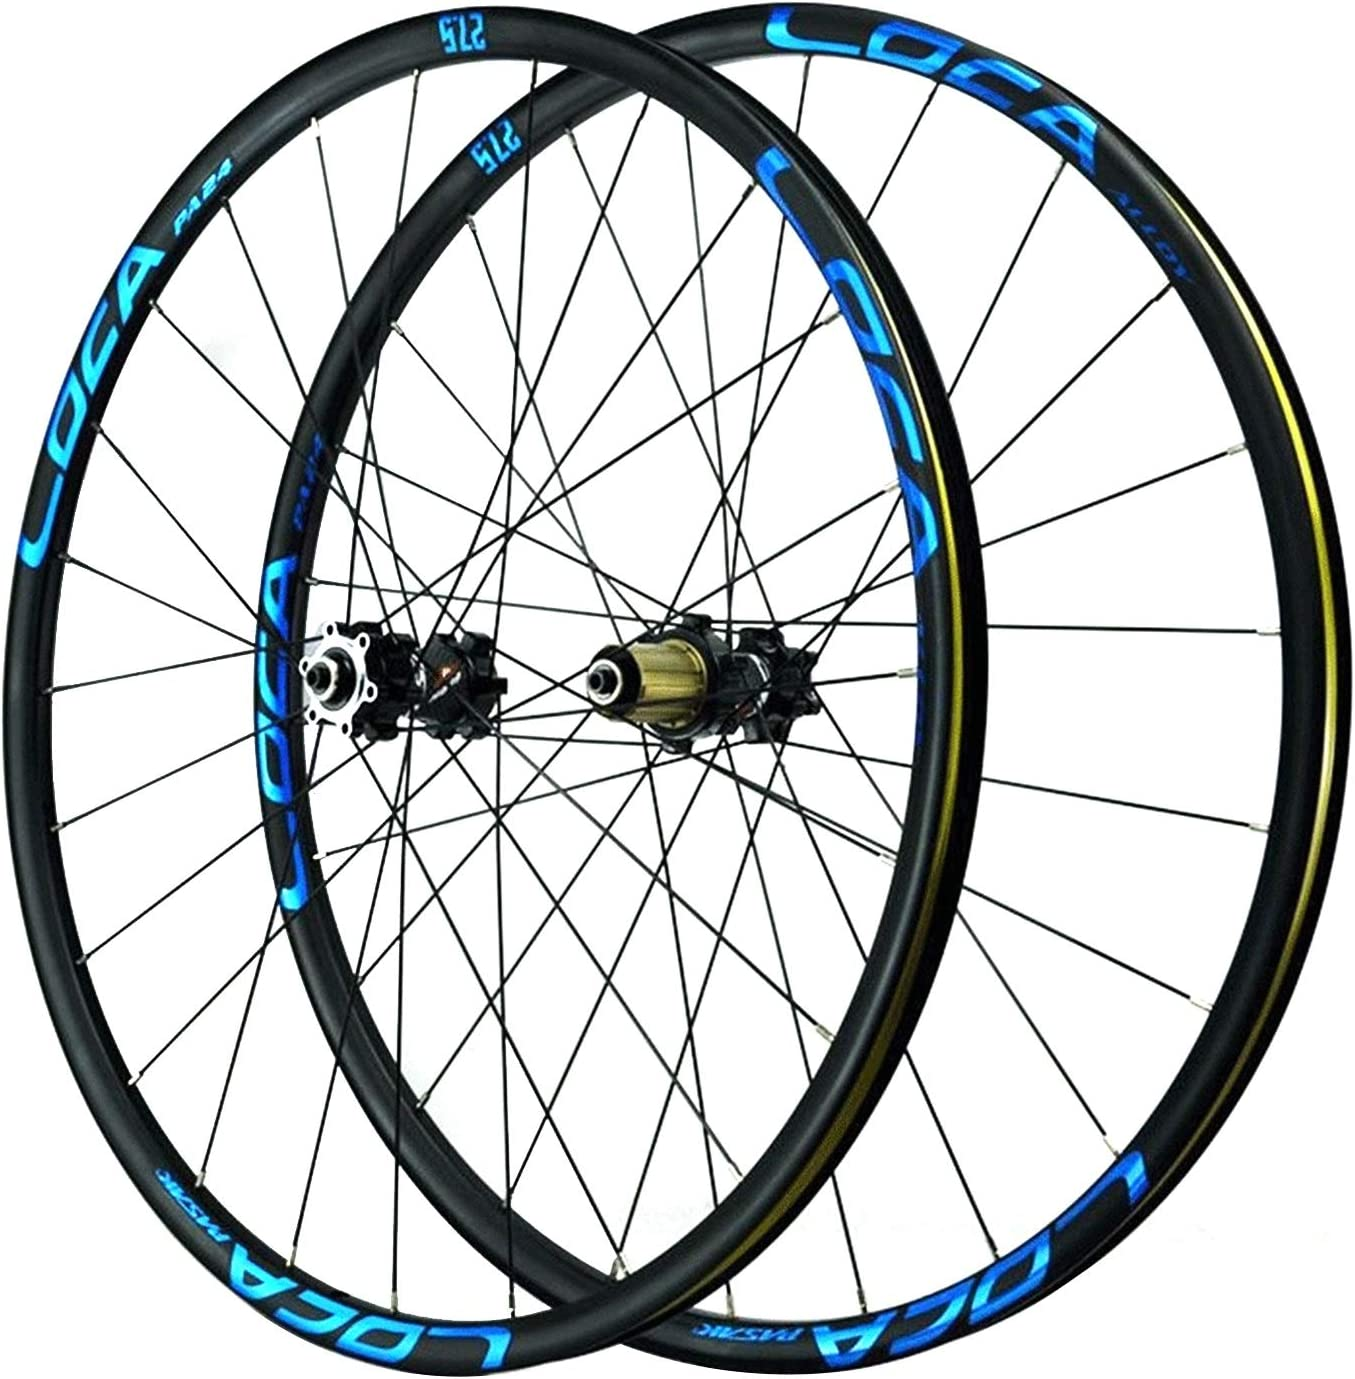 Ranking integrated 1st place GXFWJD Bicycle Wheelset MTB Bike Wheel Sealed Directly managed store Be Inch 27.5 29 26